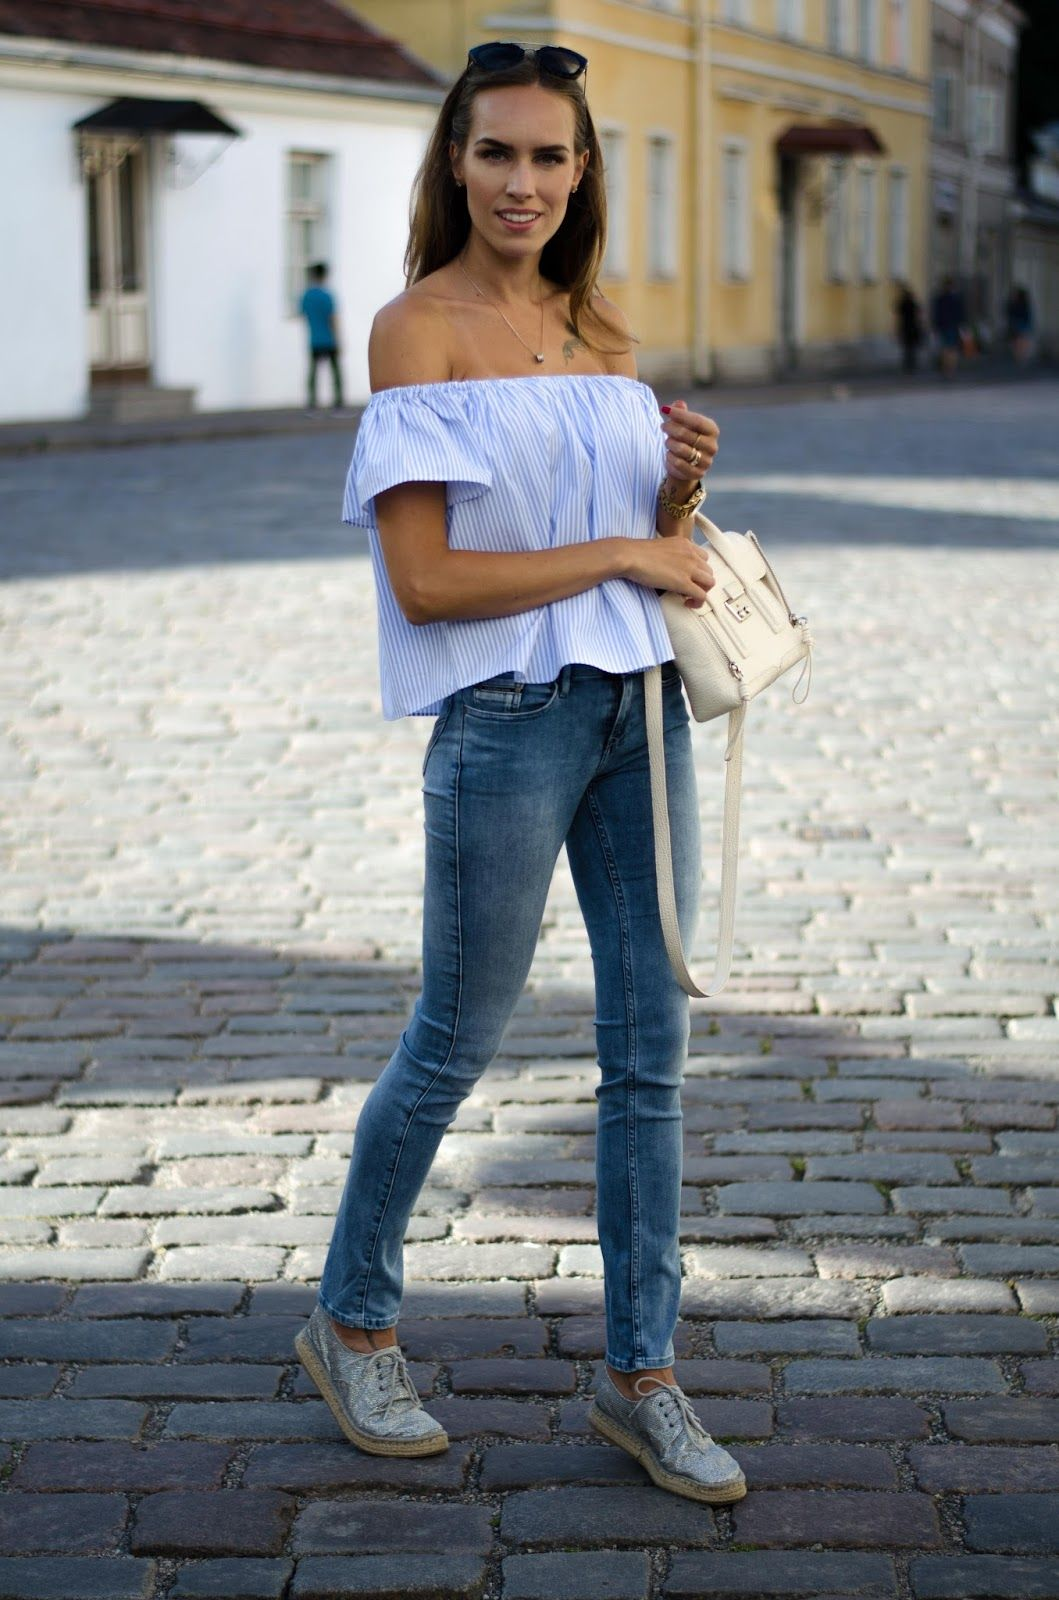 dd2e8b00e0d kristjaana mere off shoulder top with jeans outfit